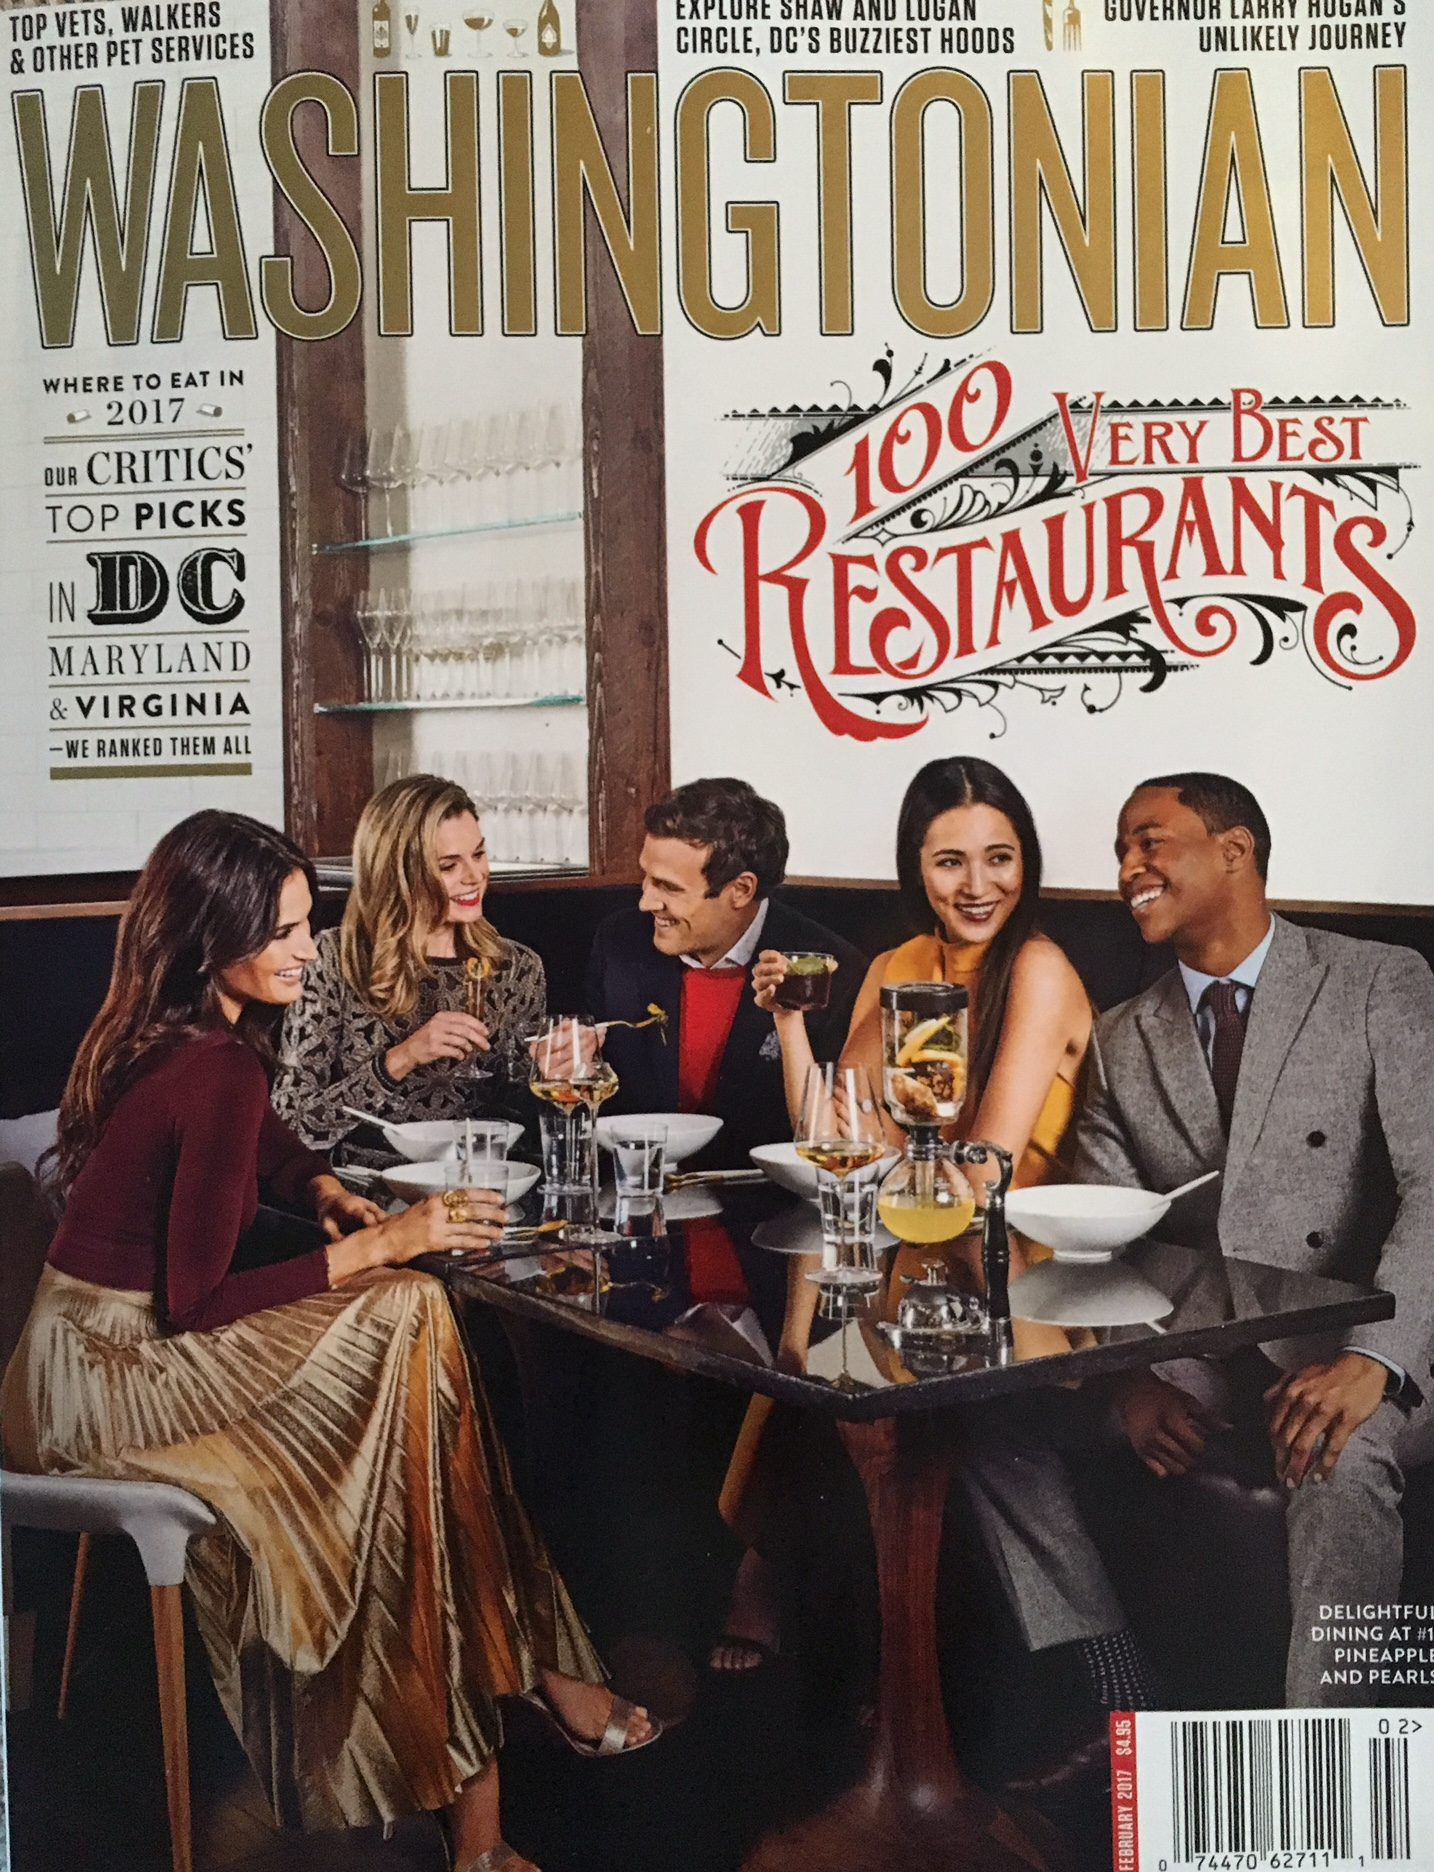 Washingtonian Magazine (2017)